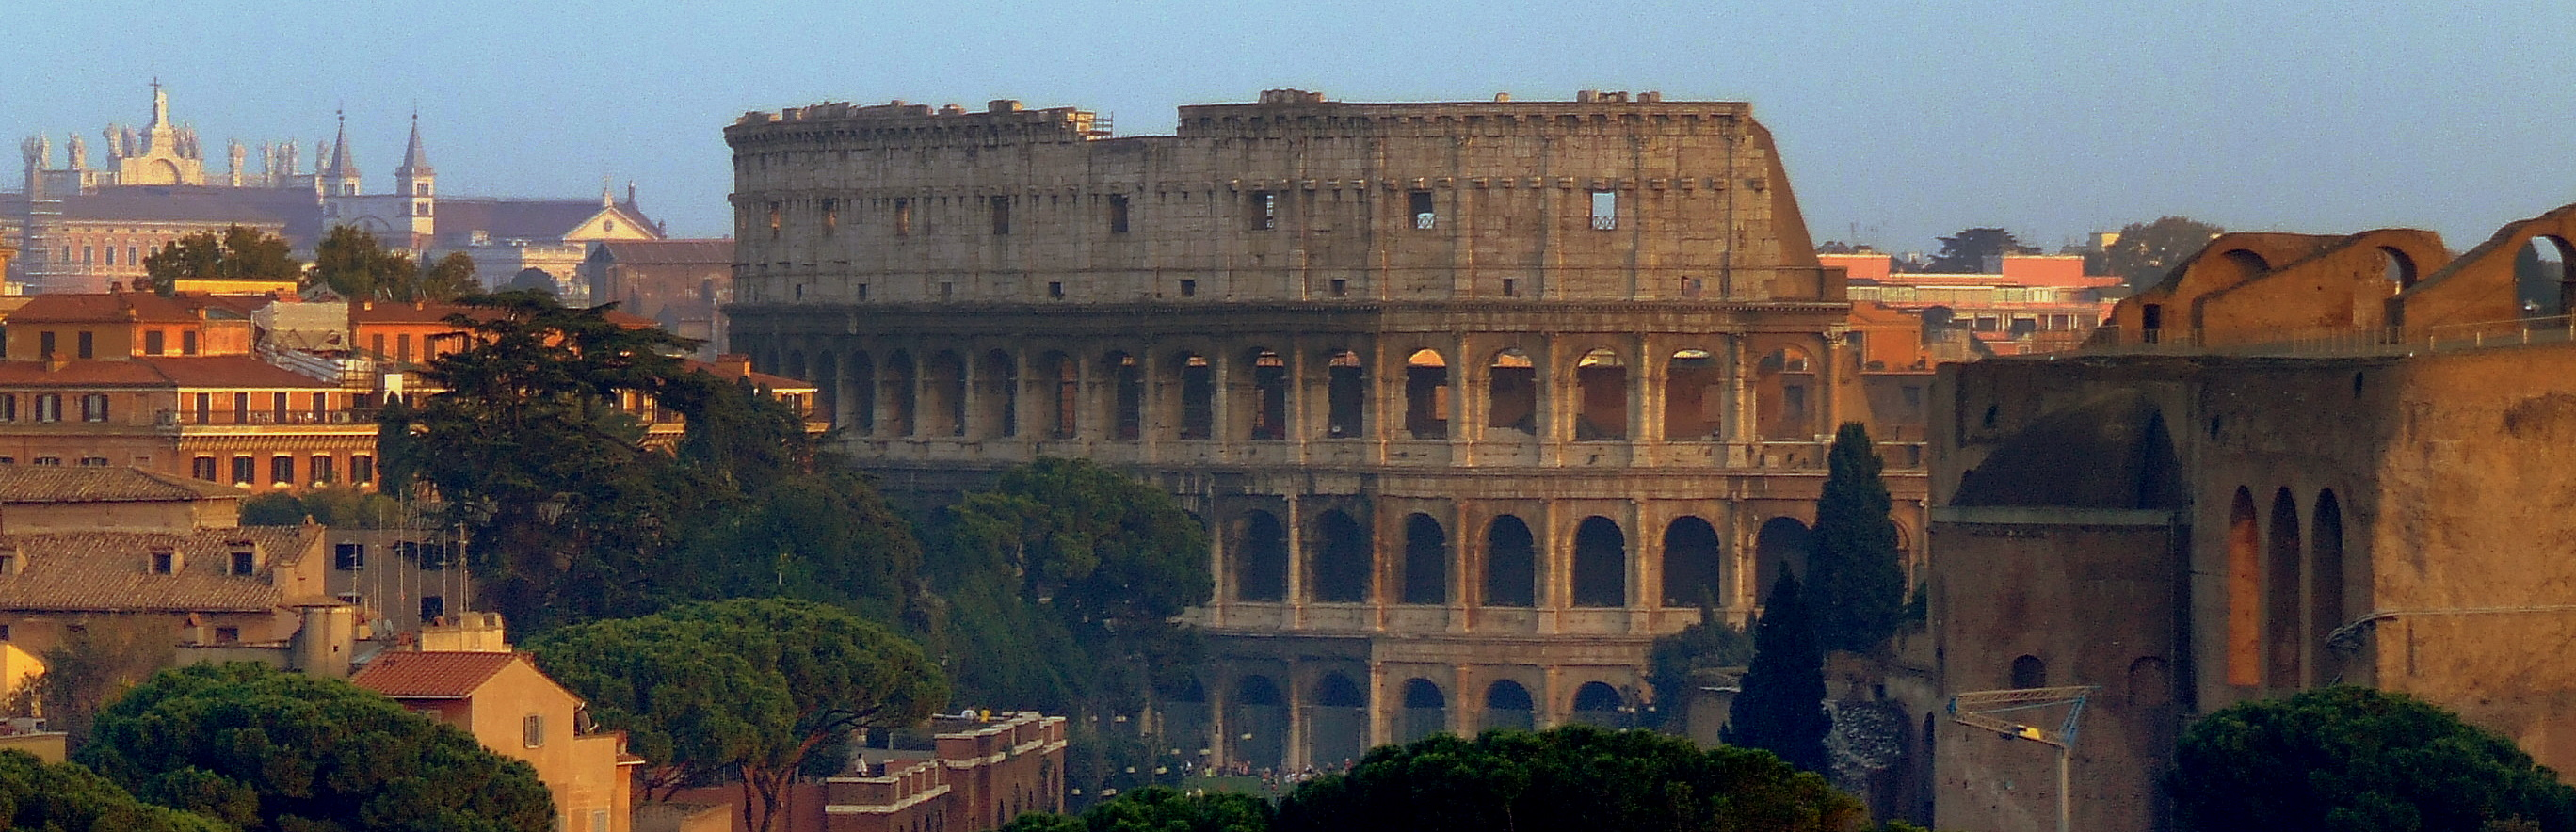 Colosseo_panorama